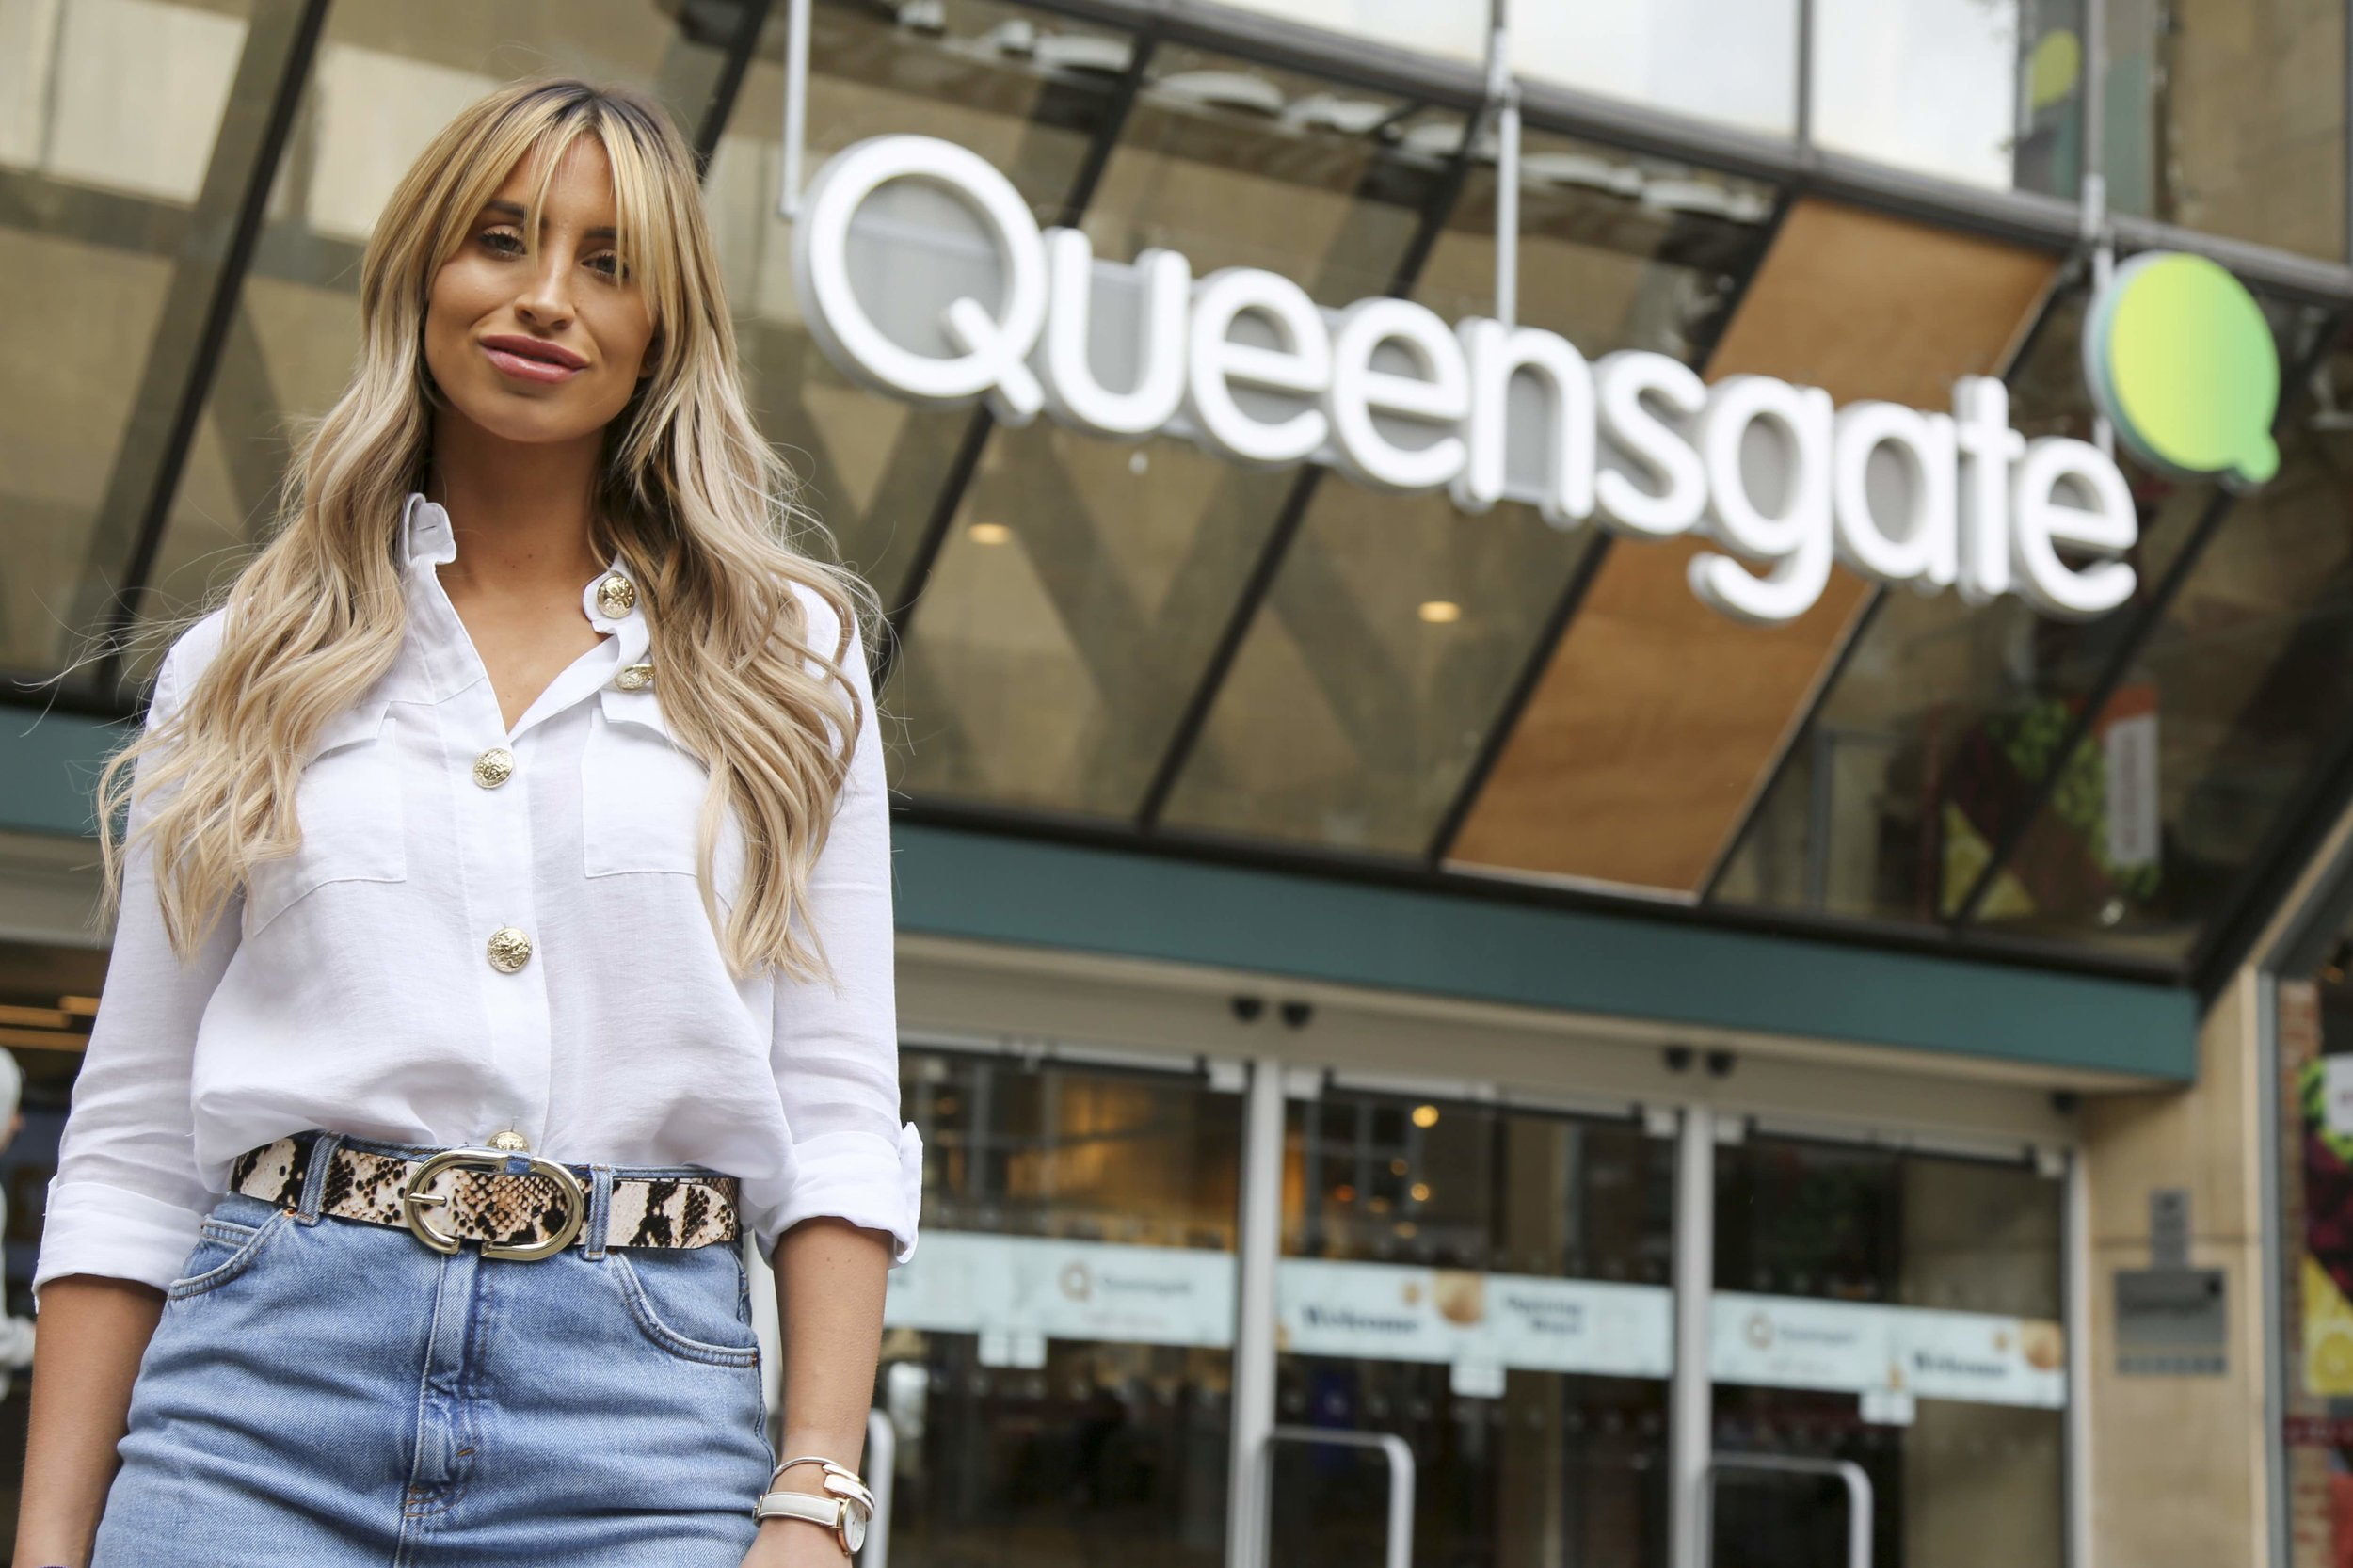 Queensgate_Ferne McCann_Summer In The City_2.jpg